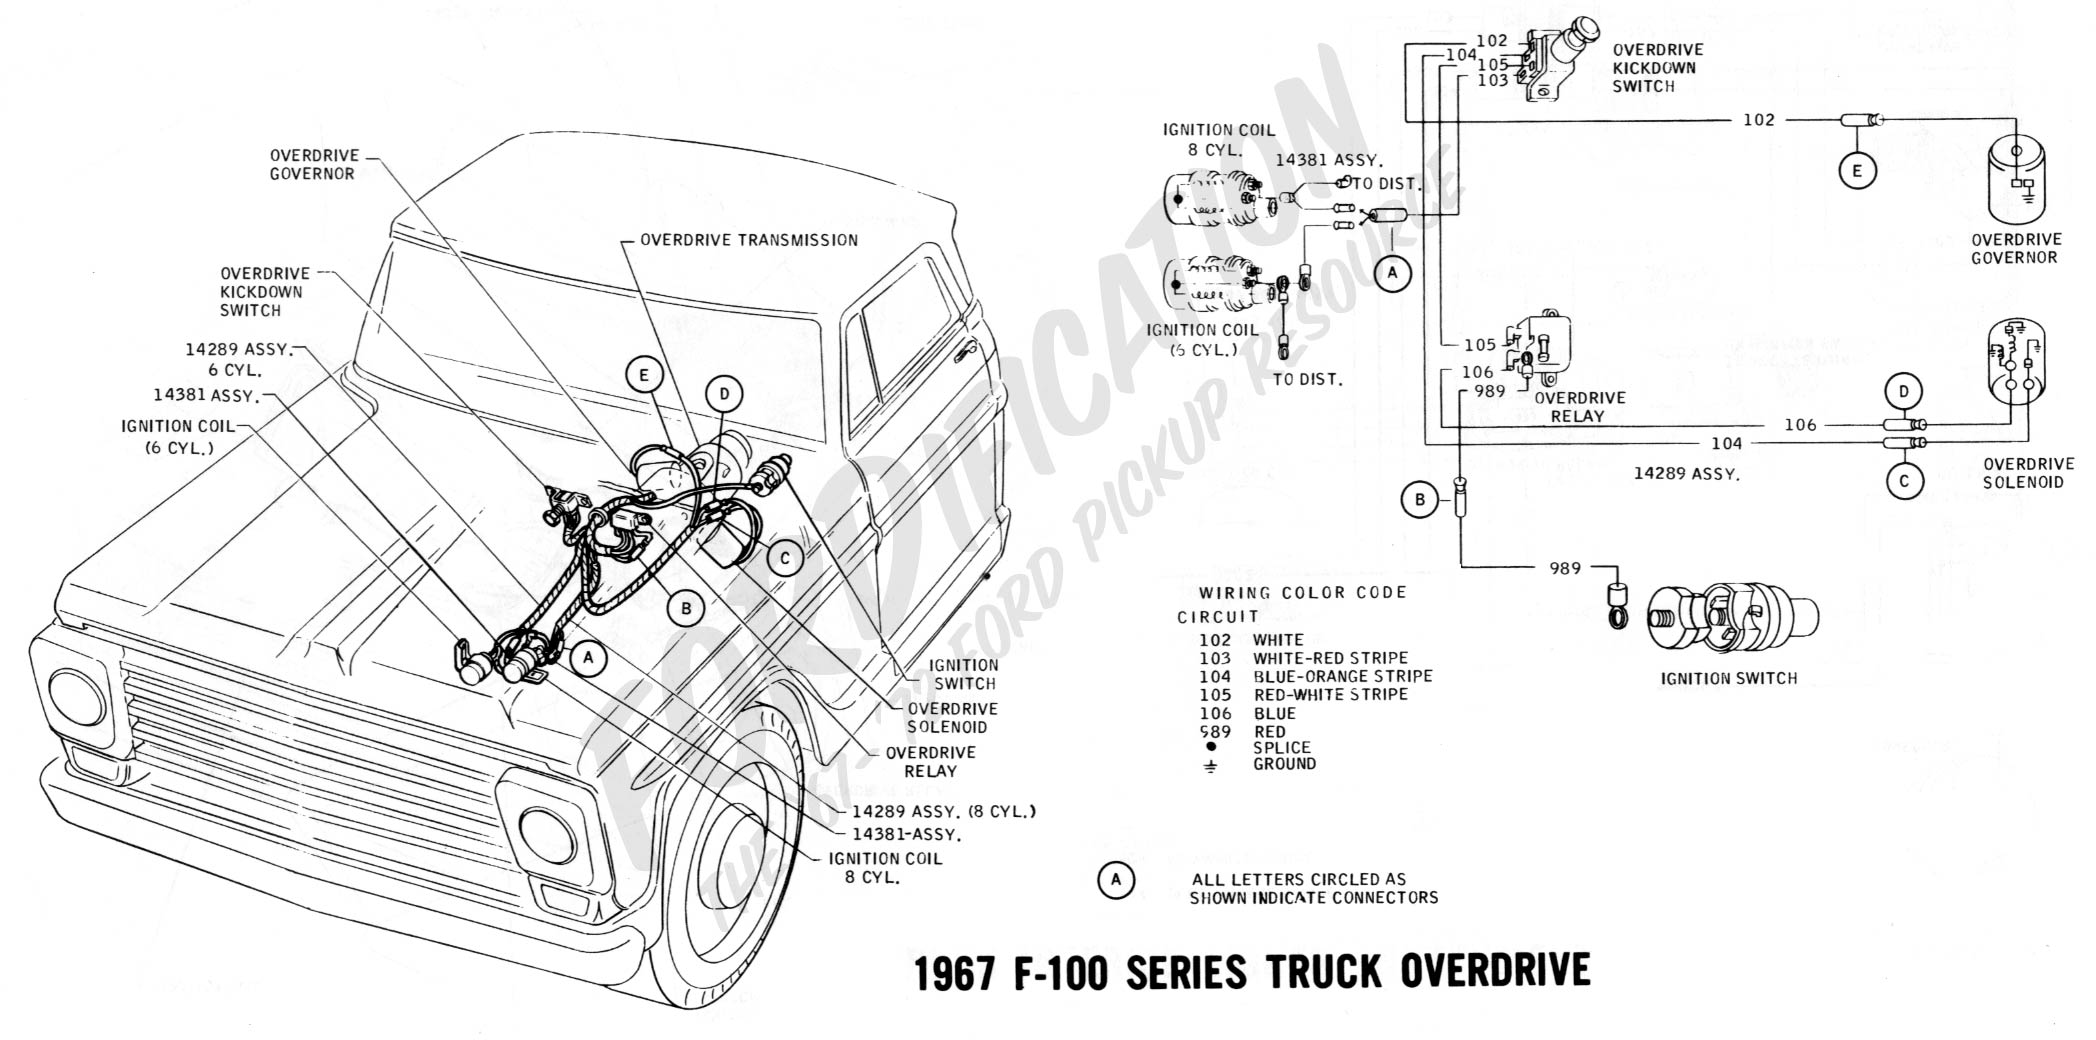 wiring diagram for a 78 ford bronco the wiring diagram 1966 ford bronco wiring harness 1966 car wiring wiring diagram